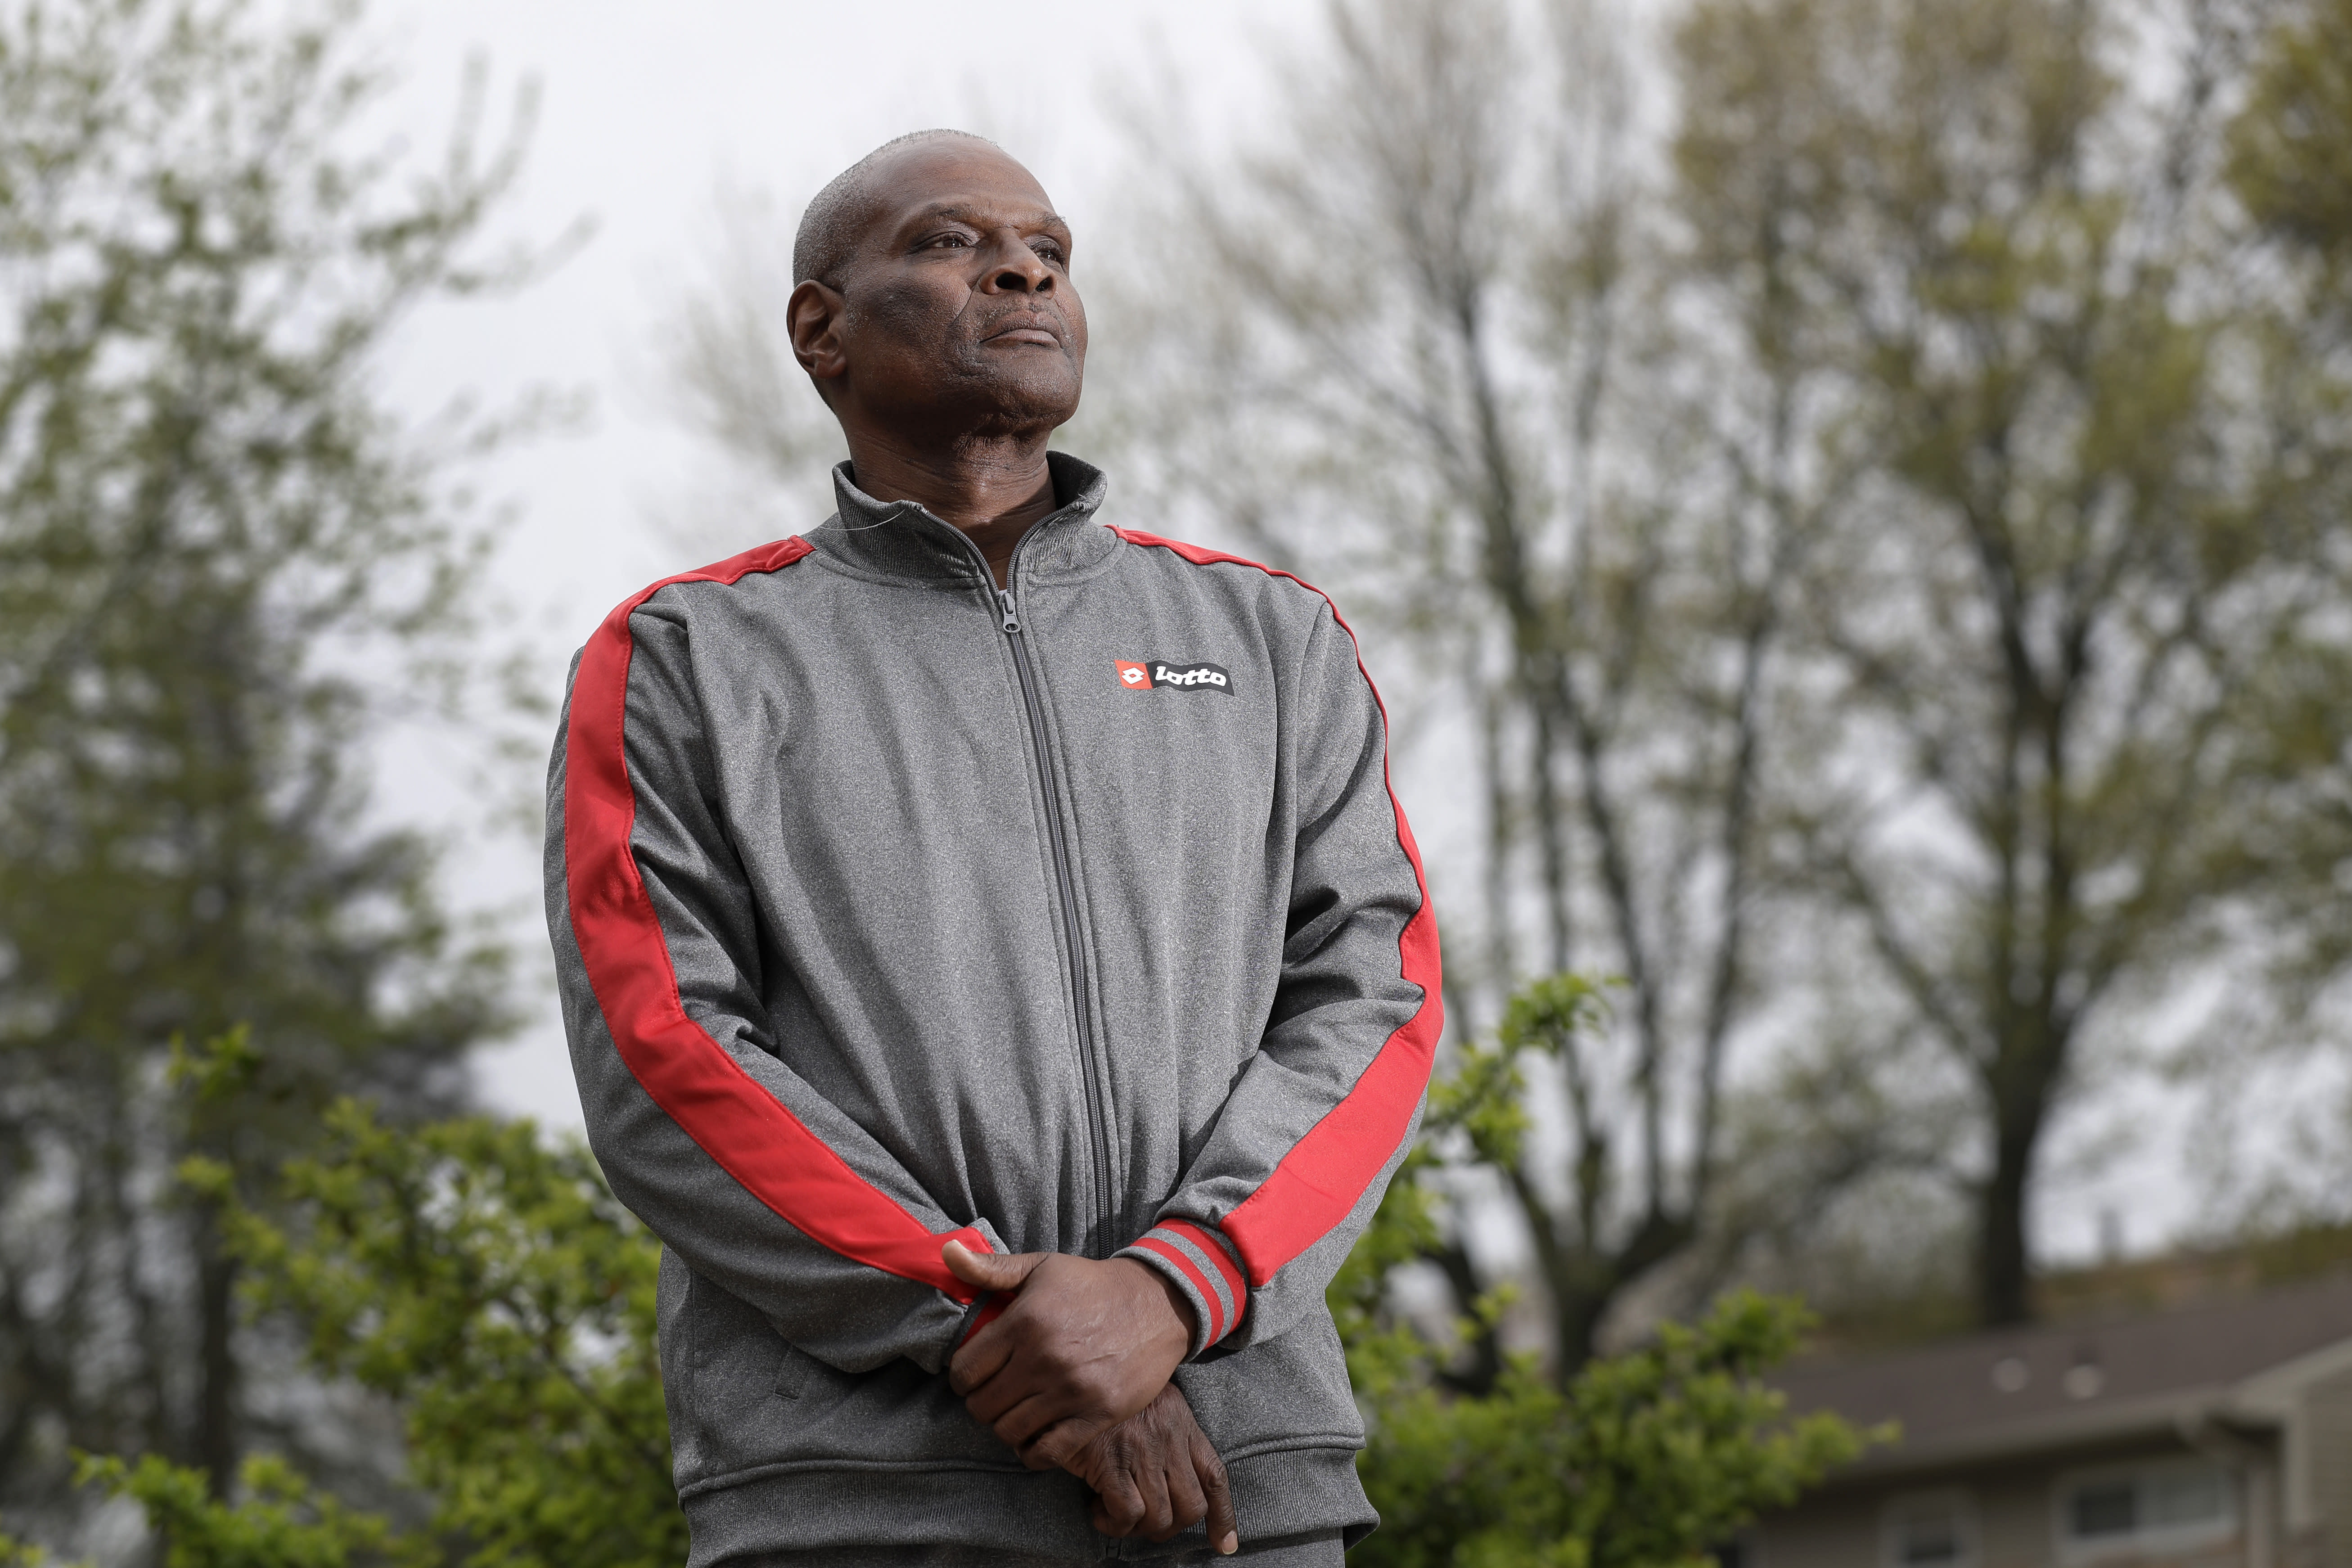 Randy Barnes poses for a photo outside his home Friday, April 17, 2020, in Dellwood, Mo. Barnes' older brother recently passed away after contracting COVID-19. (AP Photo/Jeff Roberson)